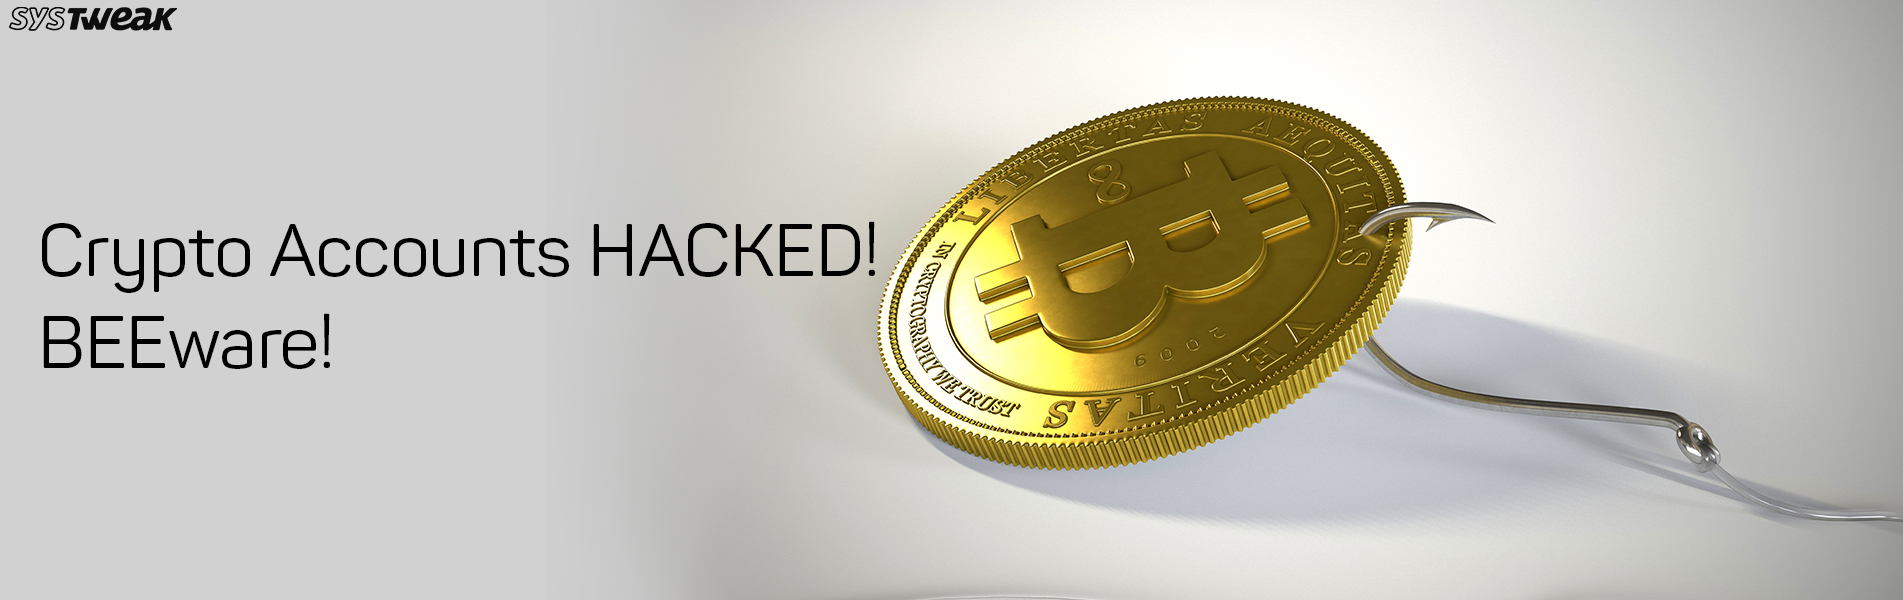 Crypto Accounts HACKED! BEEware!